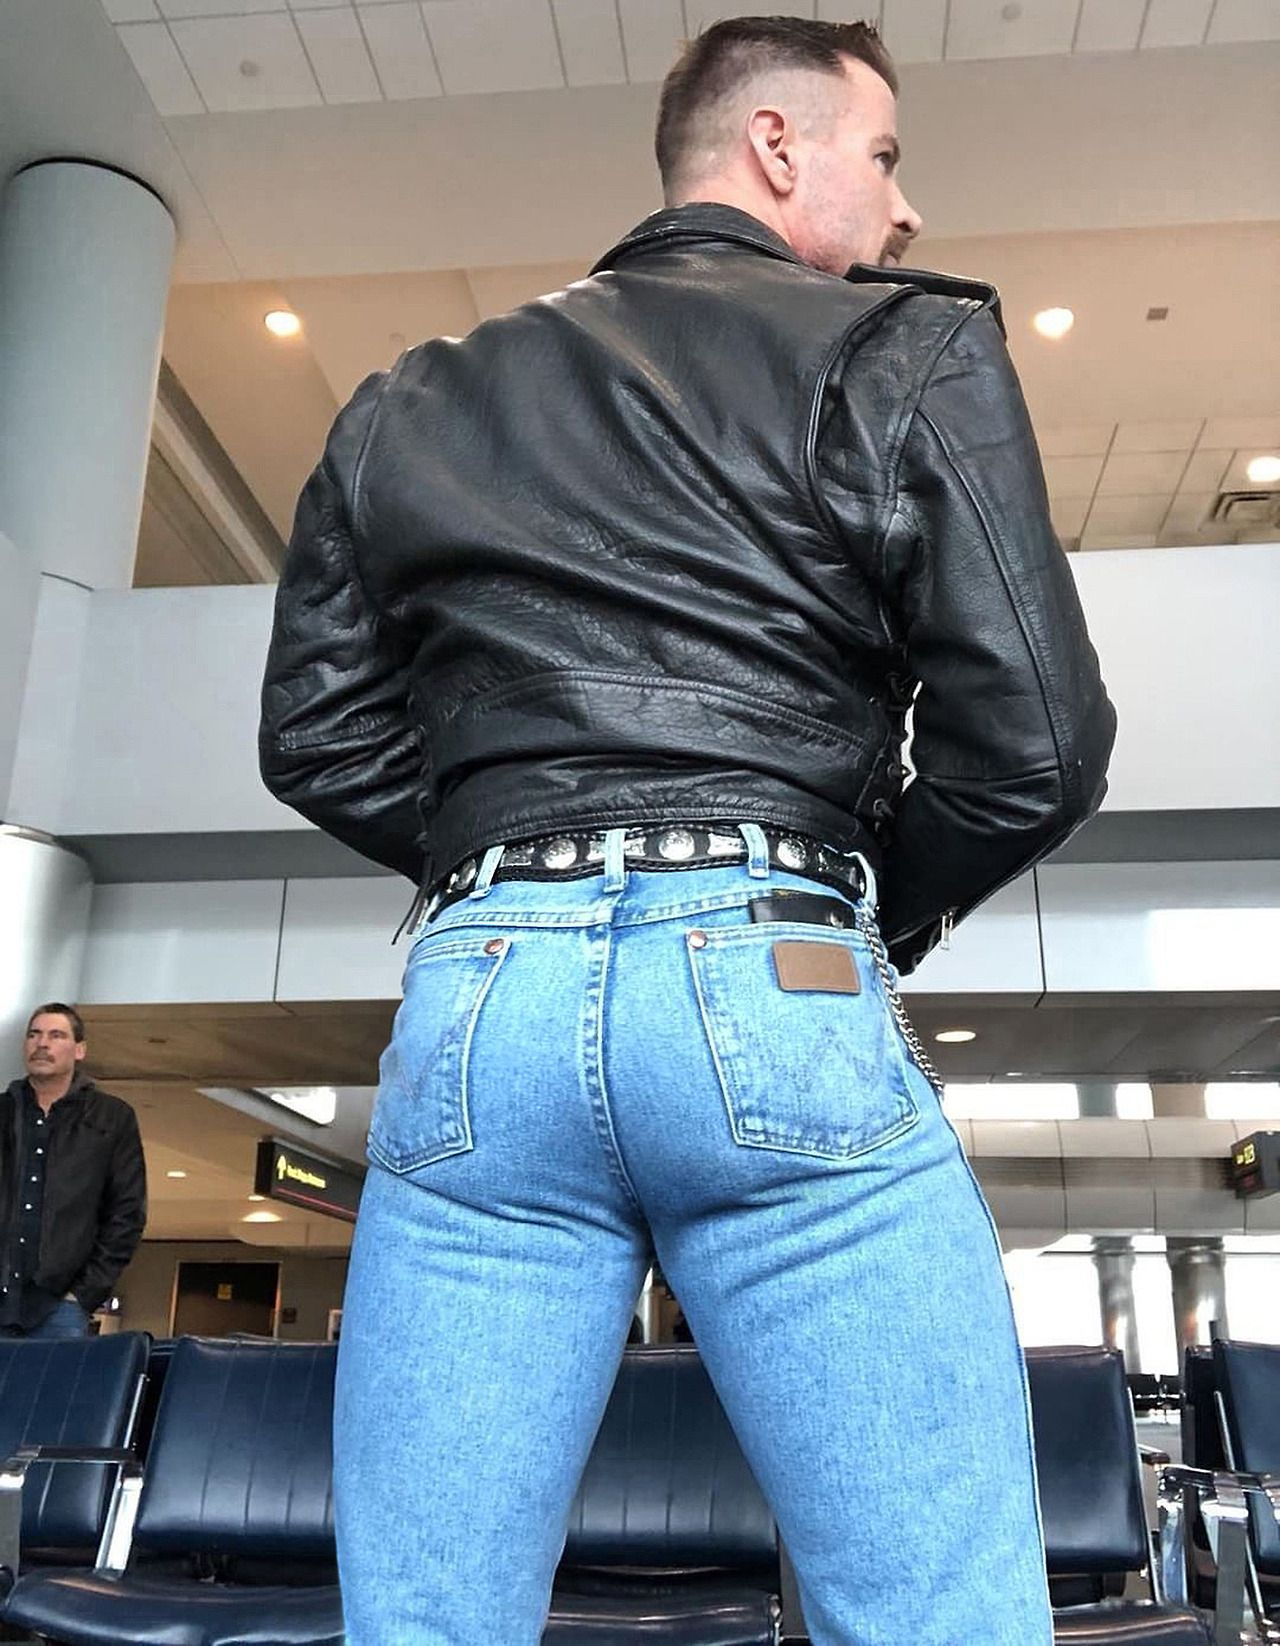 gay in jeans man skintight